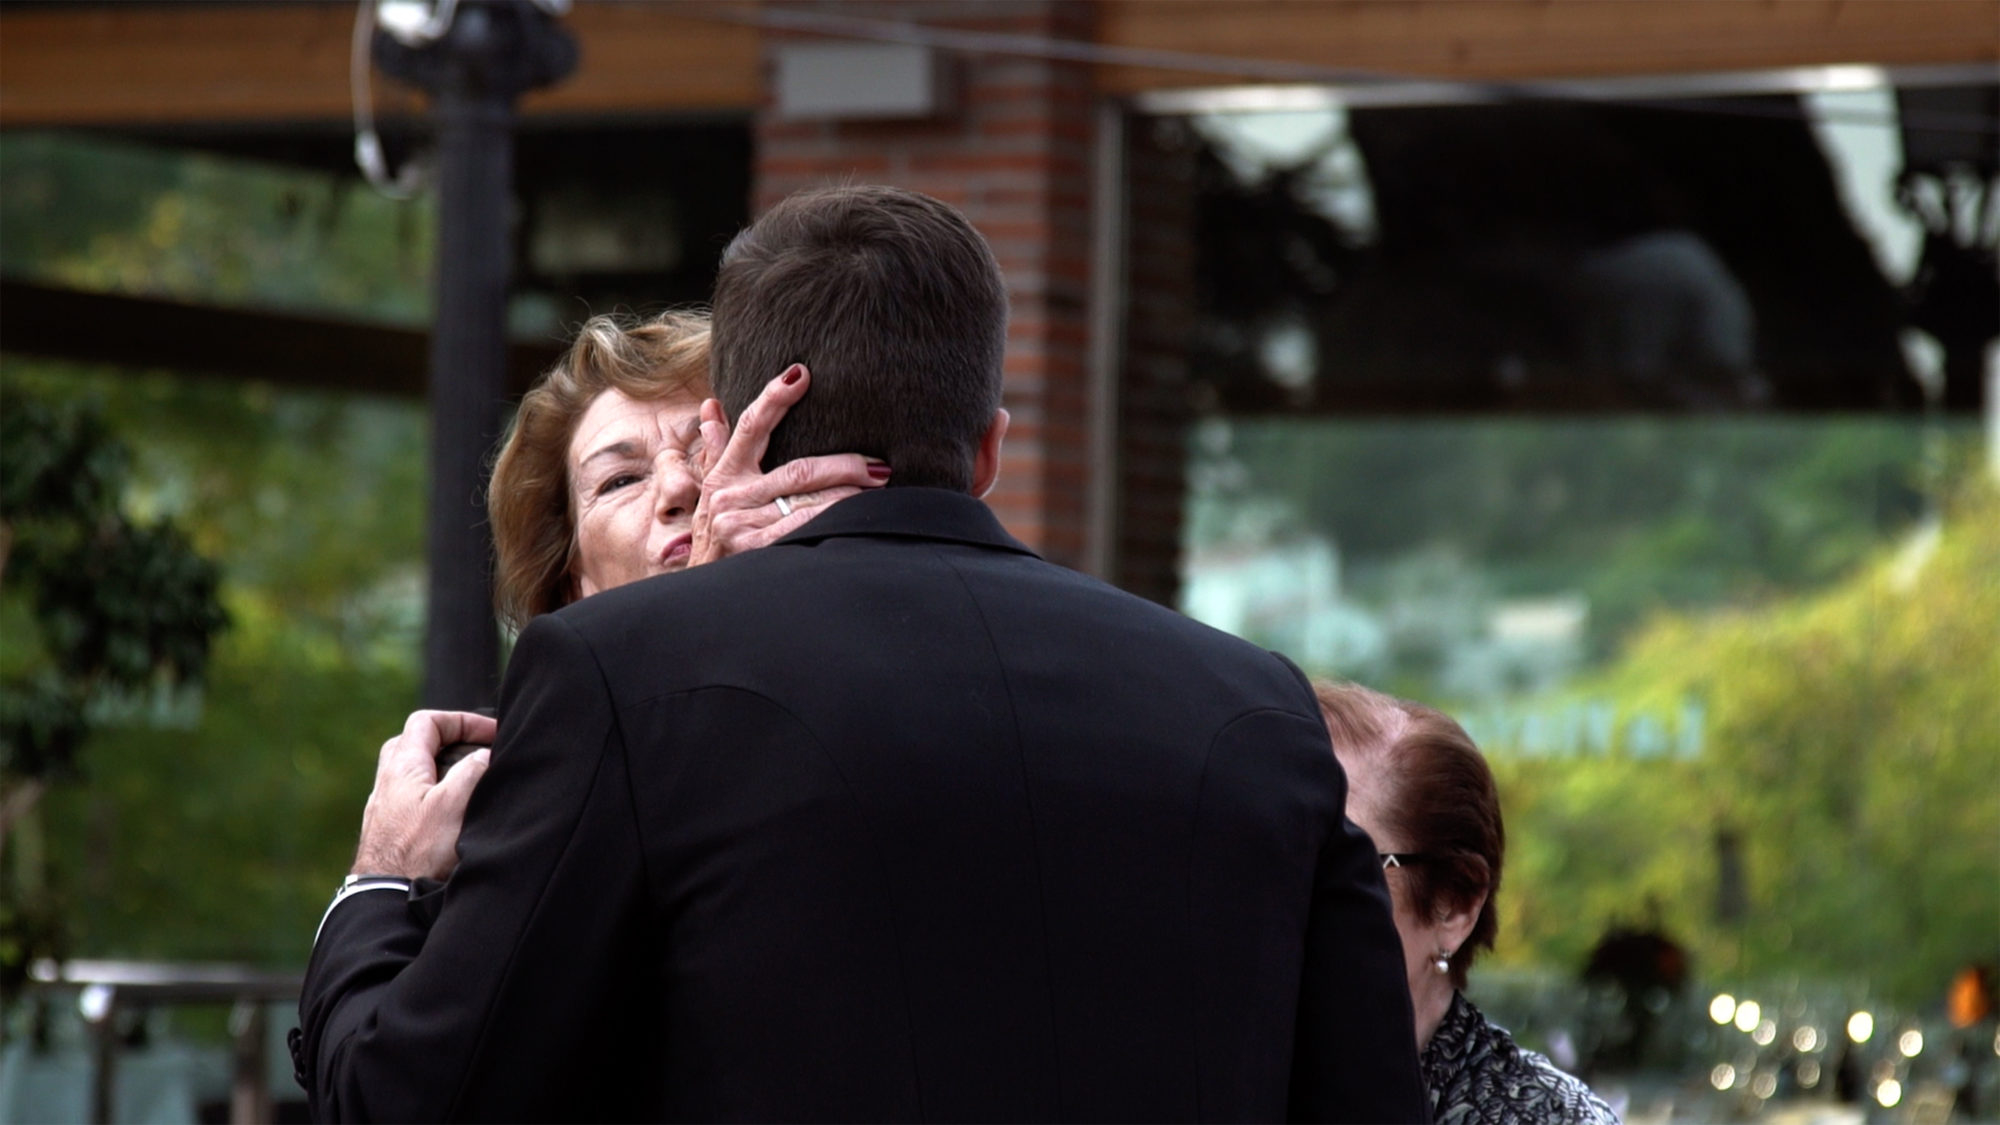 Madre besando hijo que se casa. Mother kissing her son, the groom.